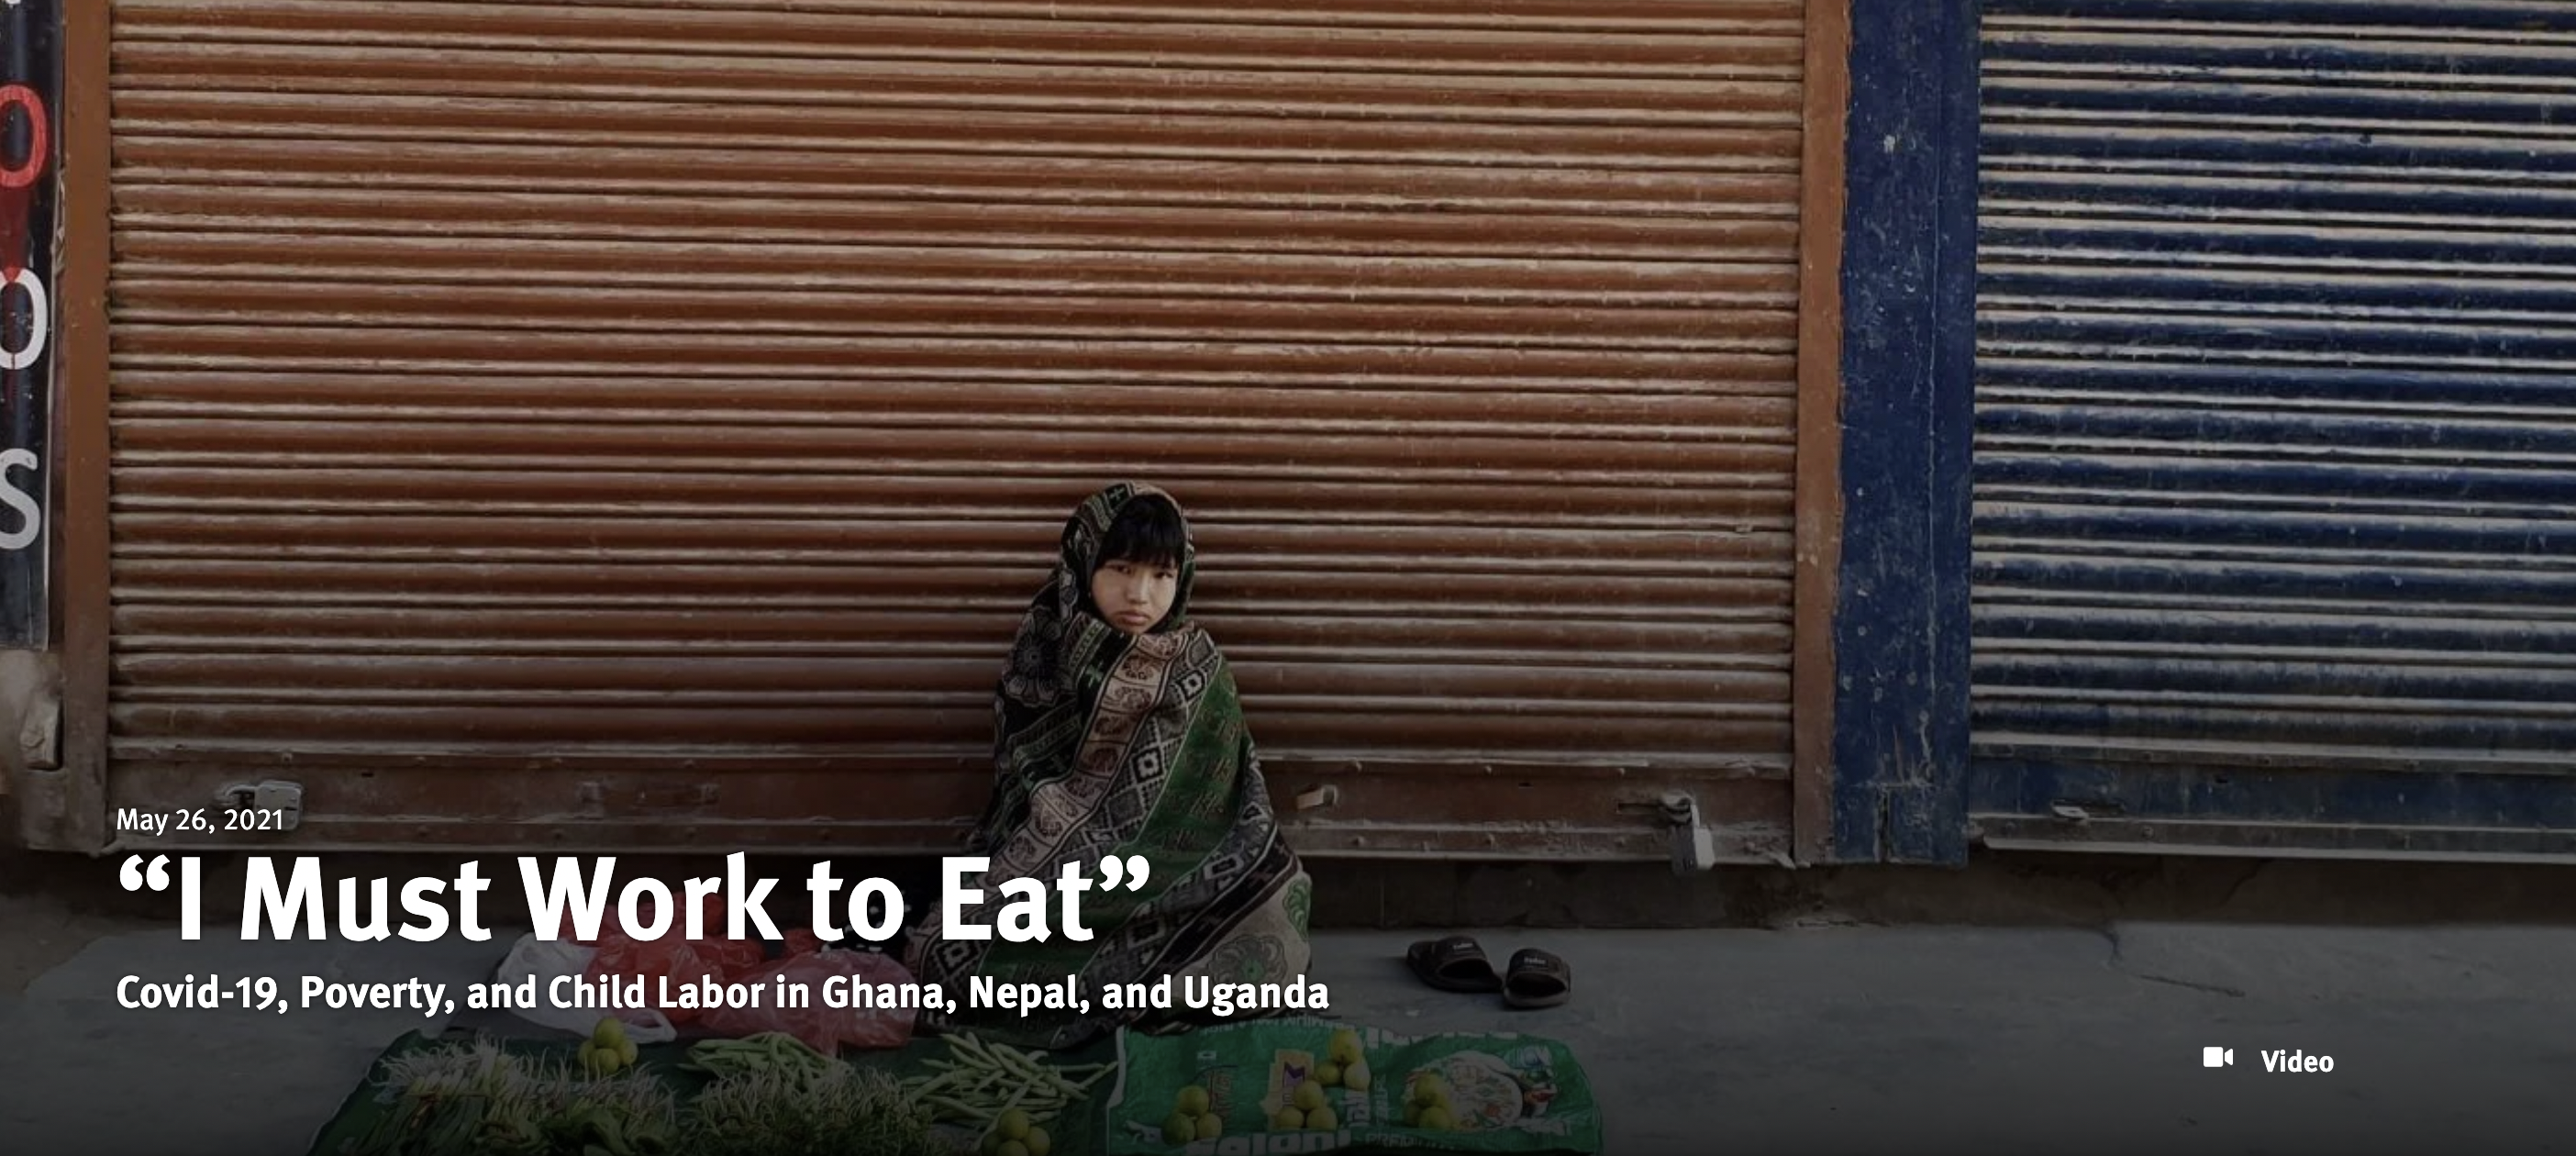 """""""I Must Work to Eat"""": Covid-19, Poverty, and Child Labor in Ghana, Nepal, and Uganda"""